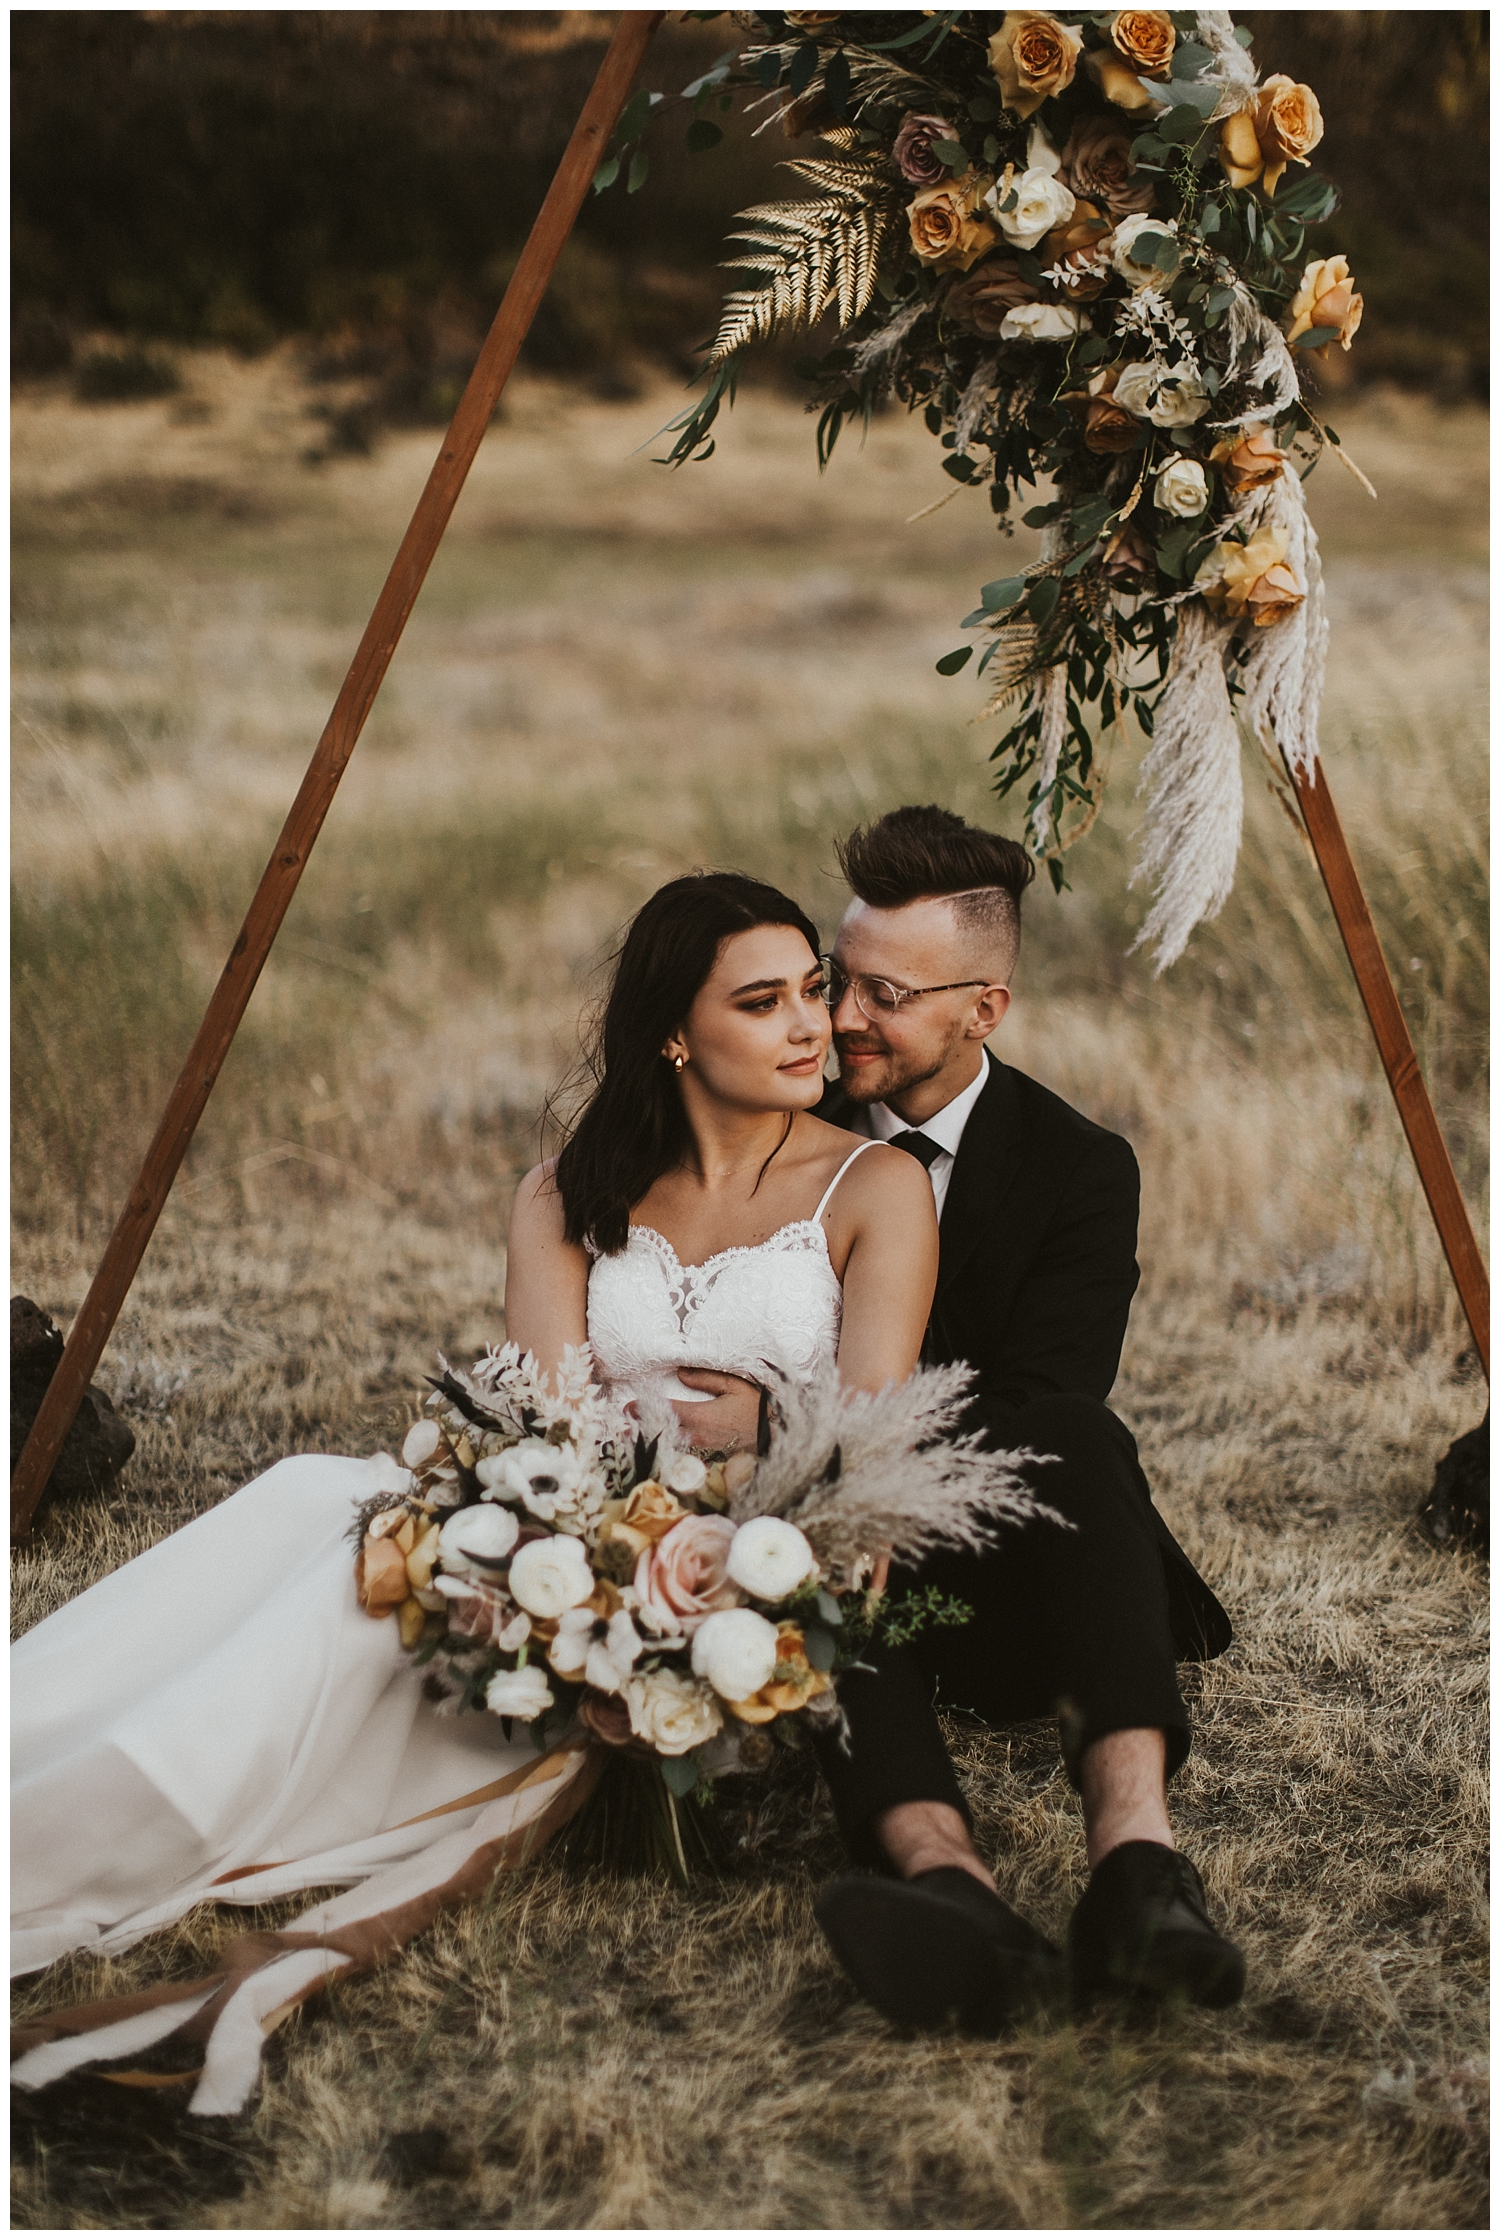 a boho bride and groom sit together under their wooden triangle arch in the desert